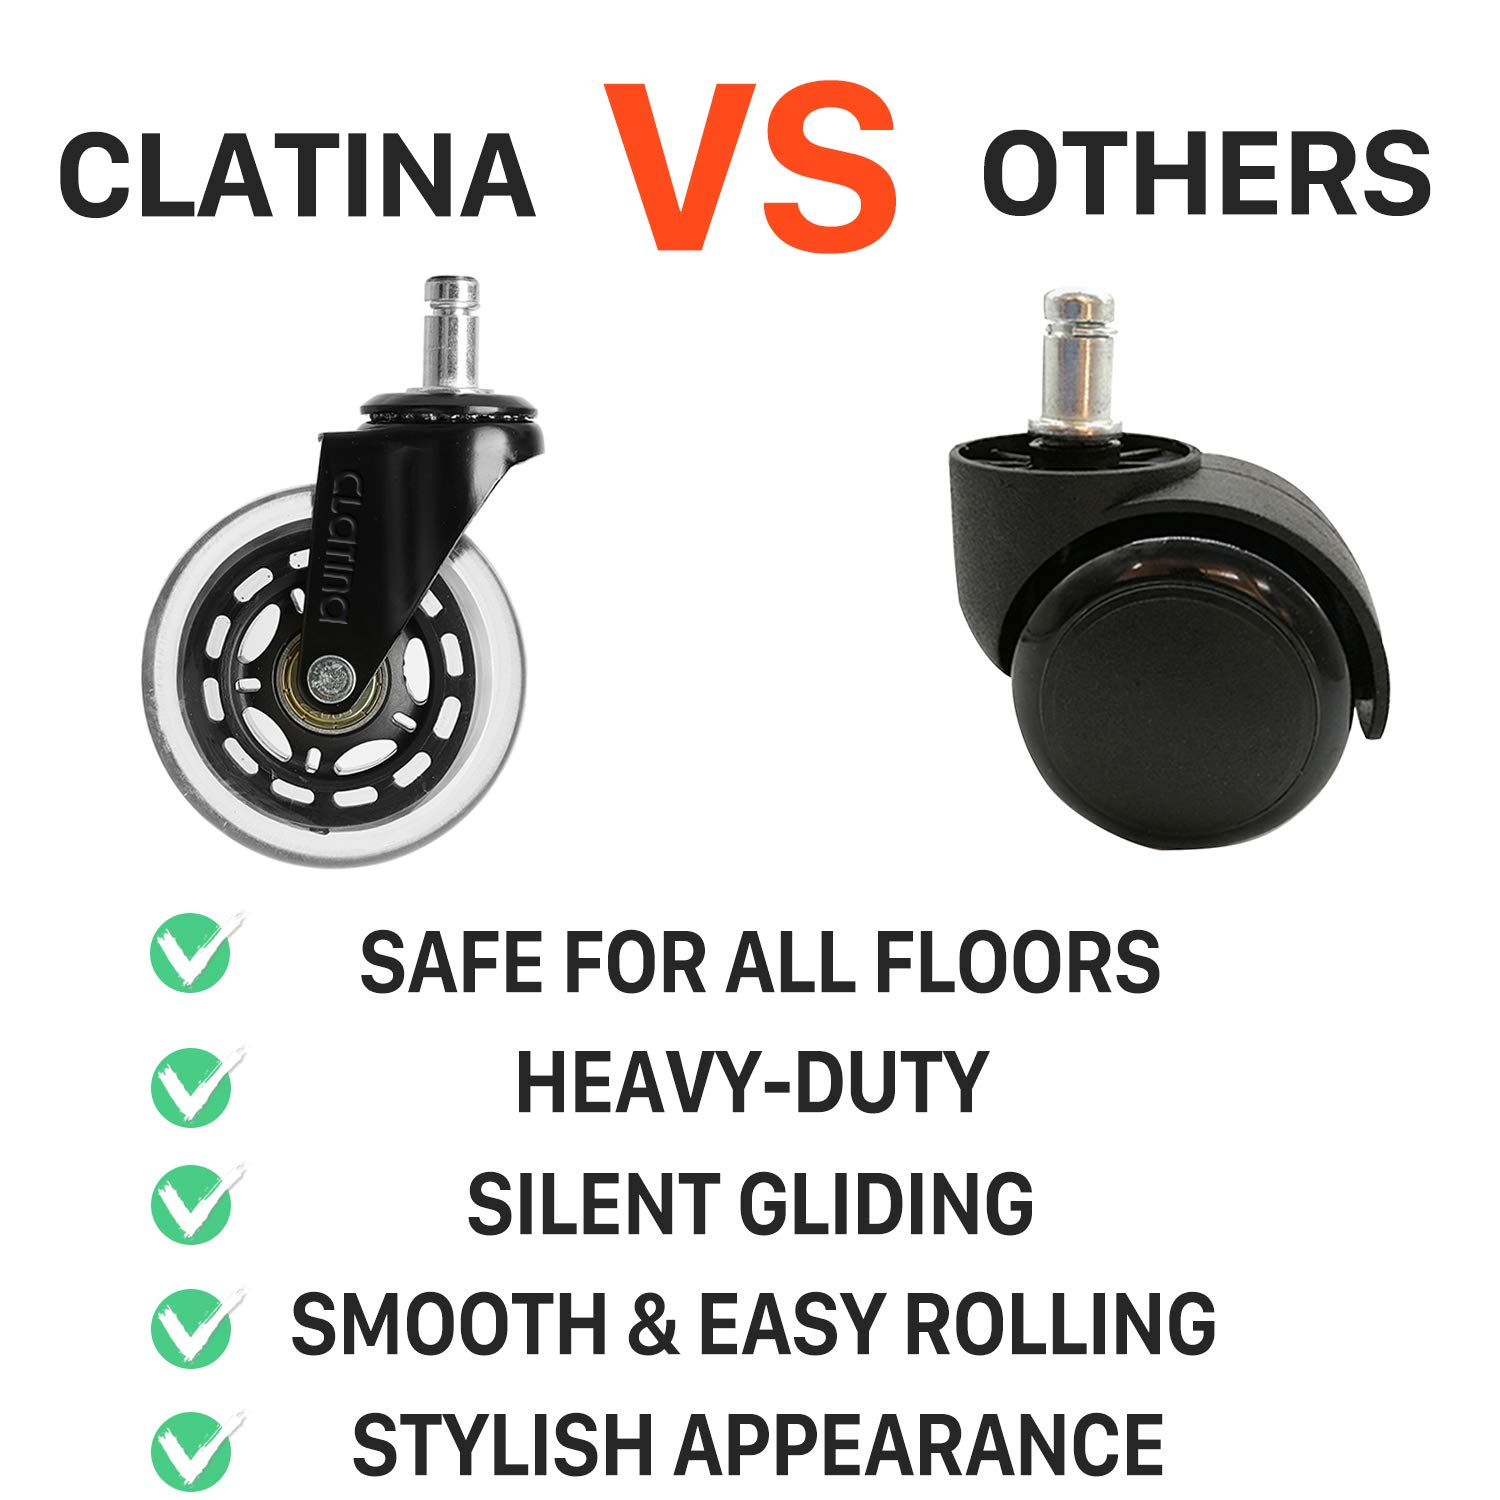 Heavy Duty Office Chairs Wheels Replacement for Hardwood Floors and Carpet Rolling Casters Safe Soft Smooth Silent Desk Gamer Computer, 1 Pack by CLATINA (Image #4)